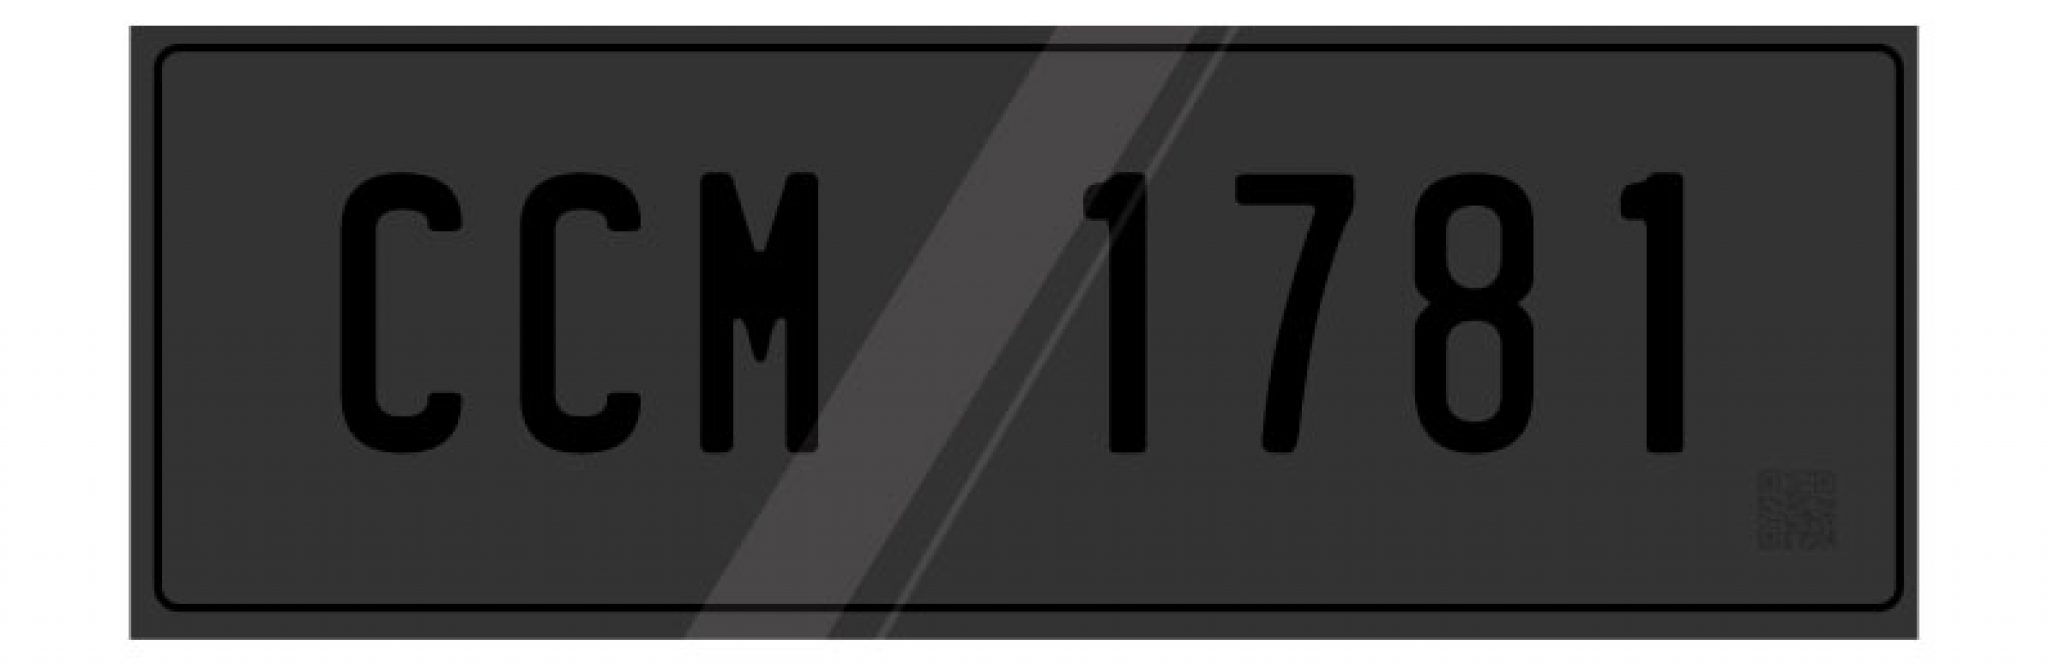 Philippine Licence Plates